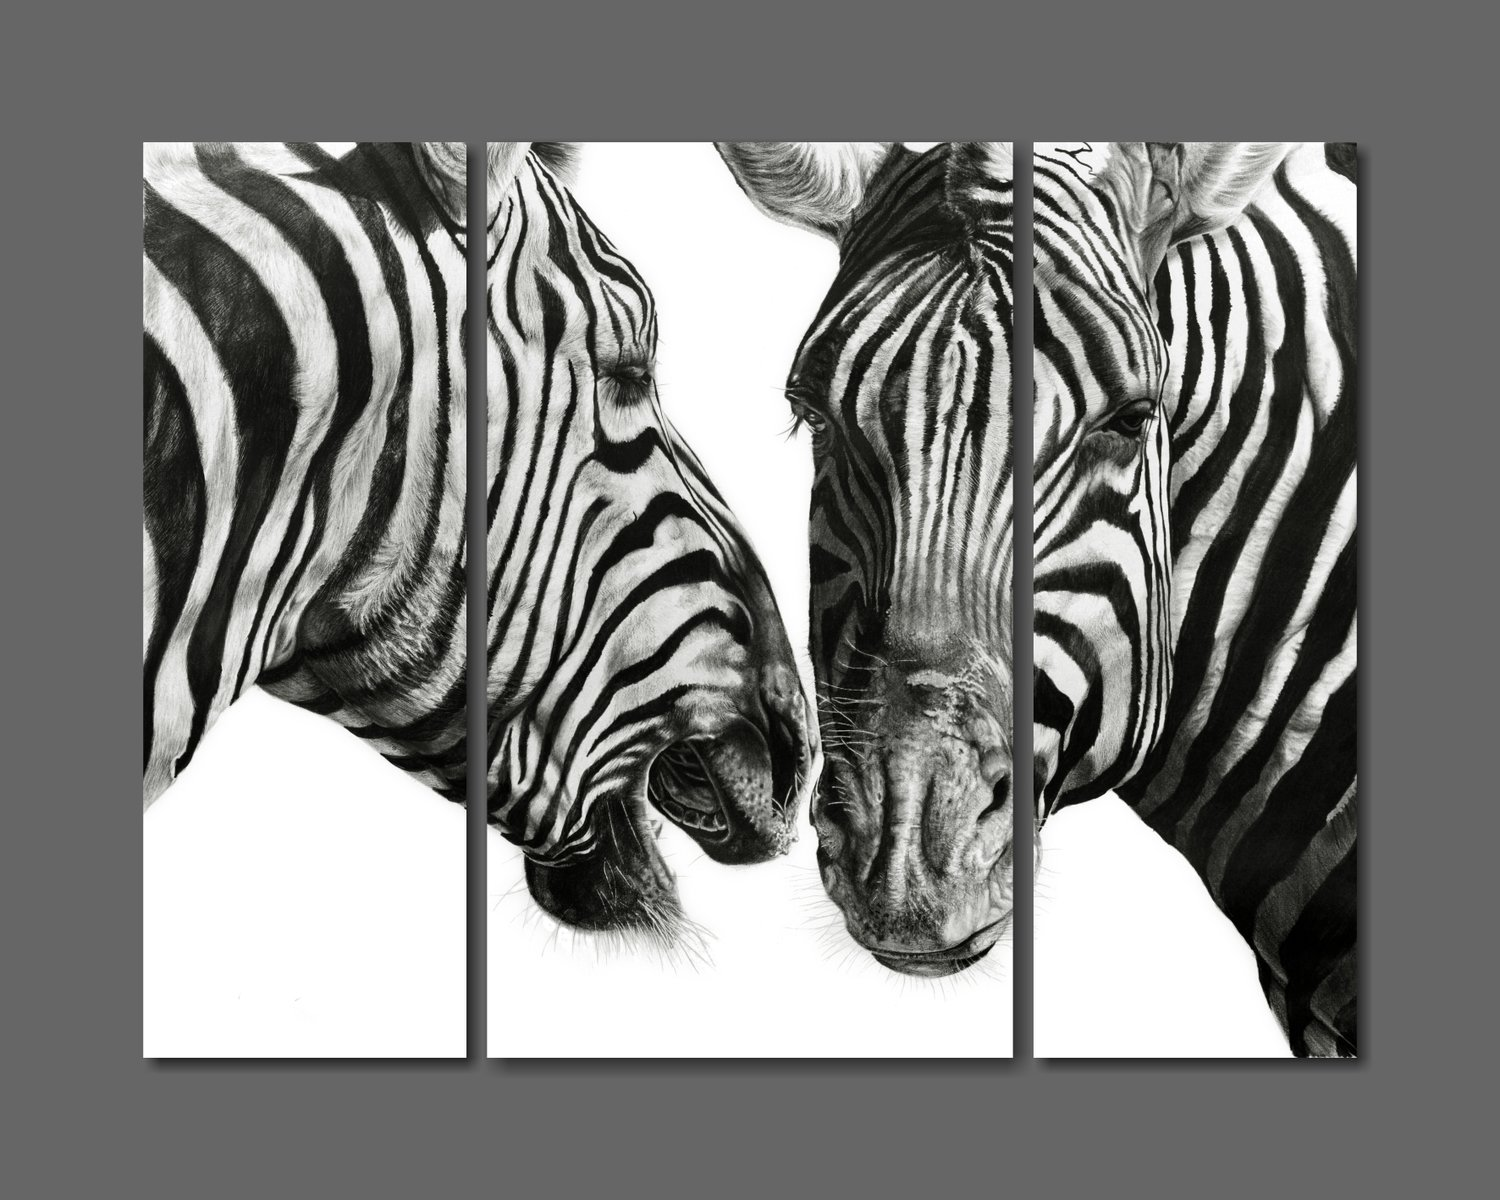 """Zebra Gossip"" 1180mm x 890mm composite print on canvass (Unframed)"